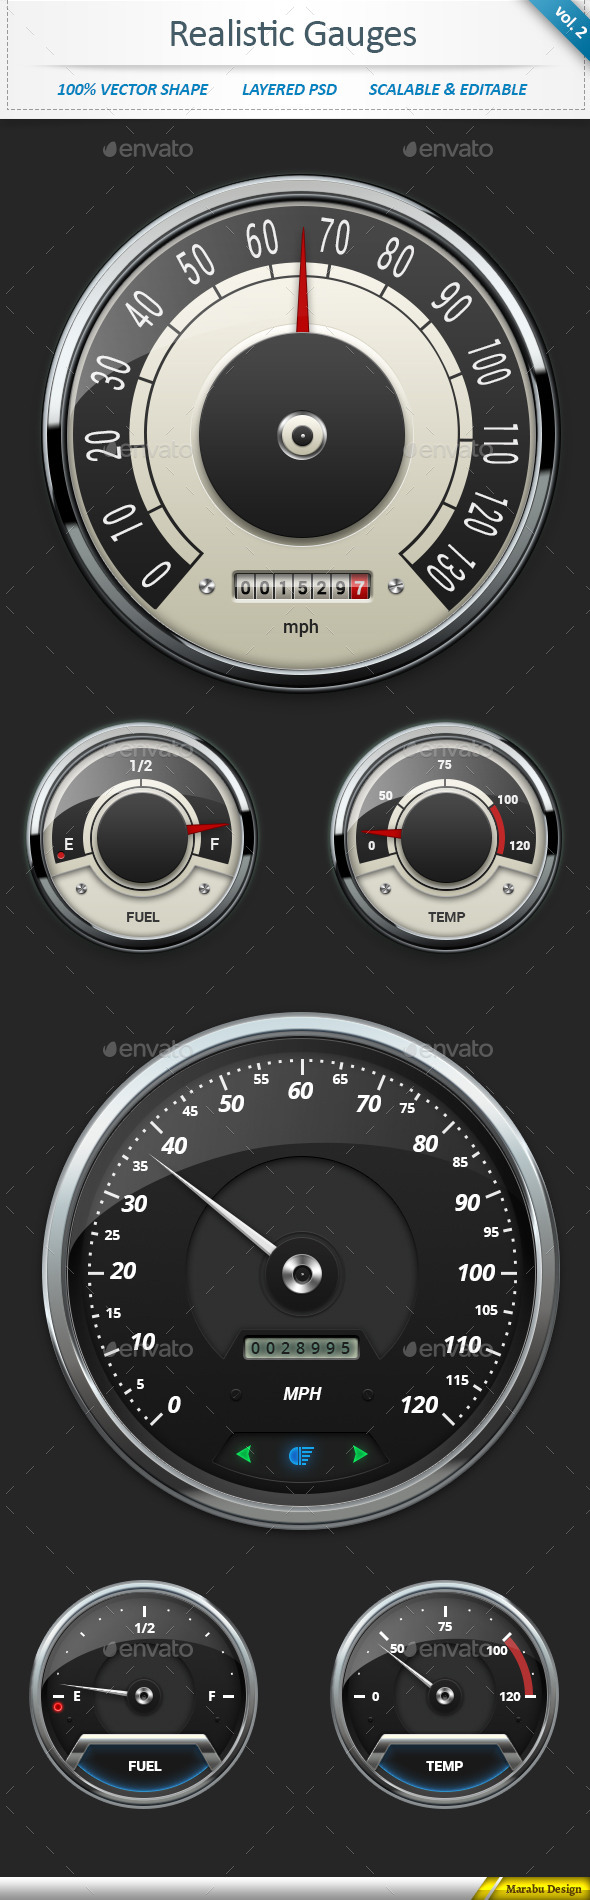 Realistic Car Gauges vol 2